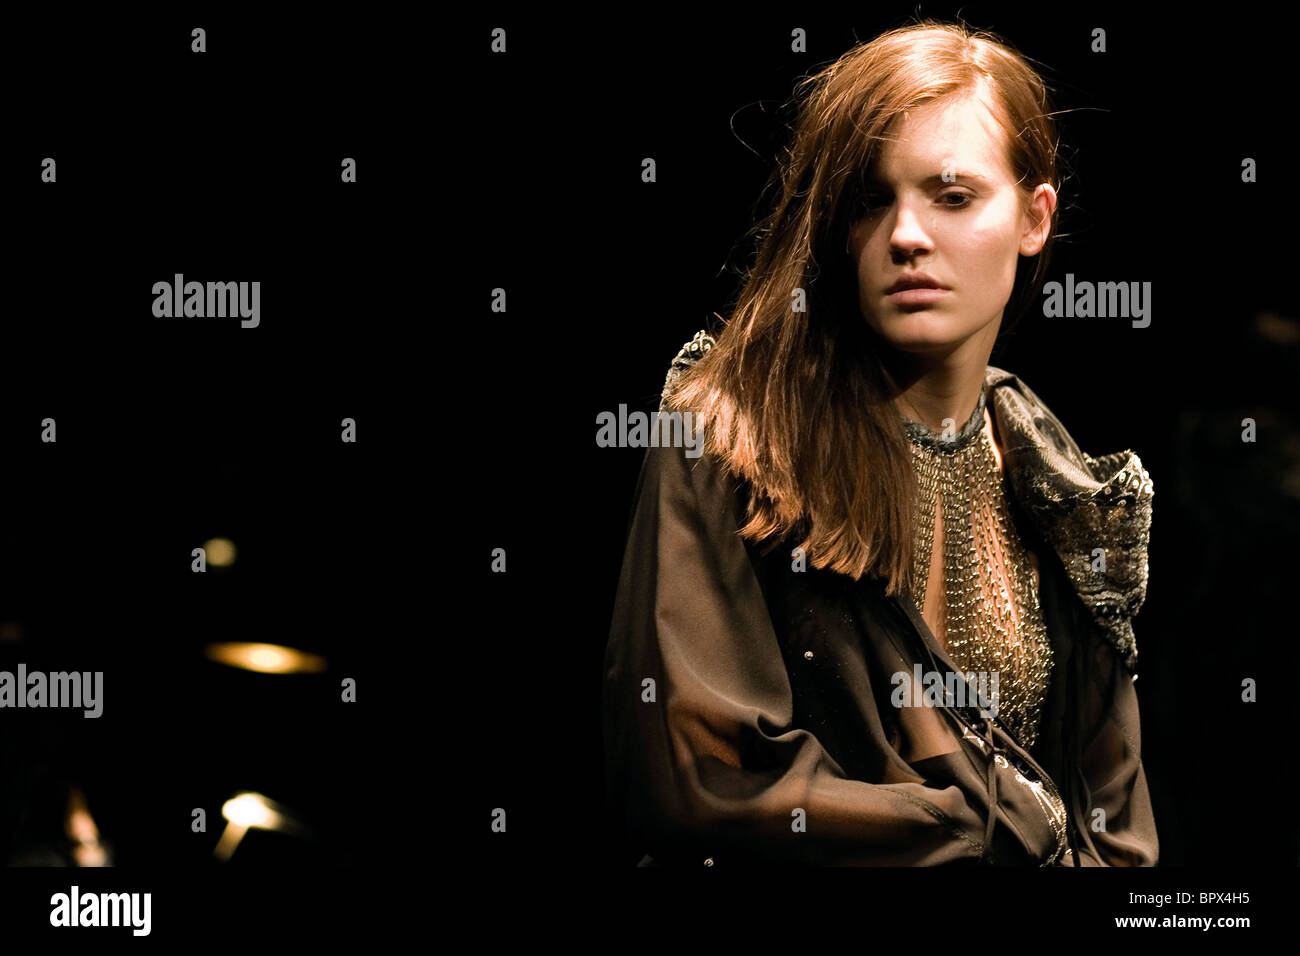 Maggie Grace Taken 2008 Stock Photo Alamy